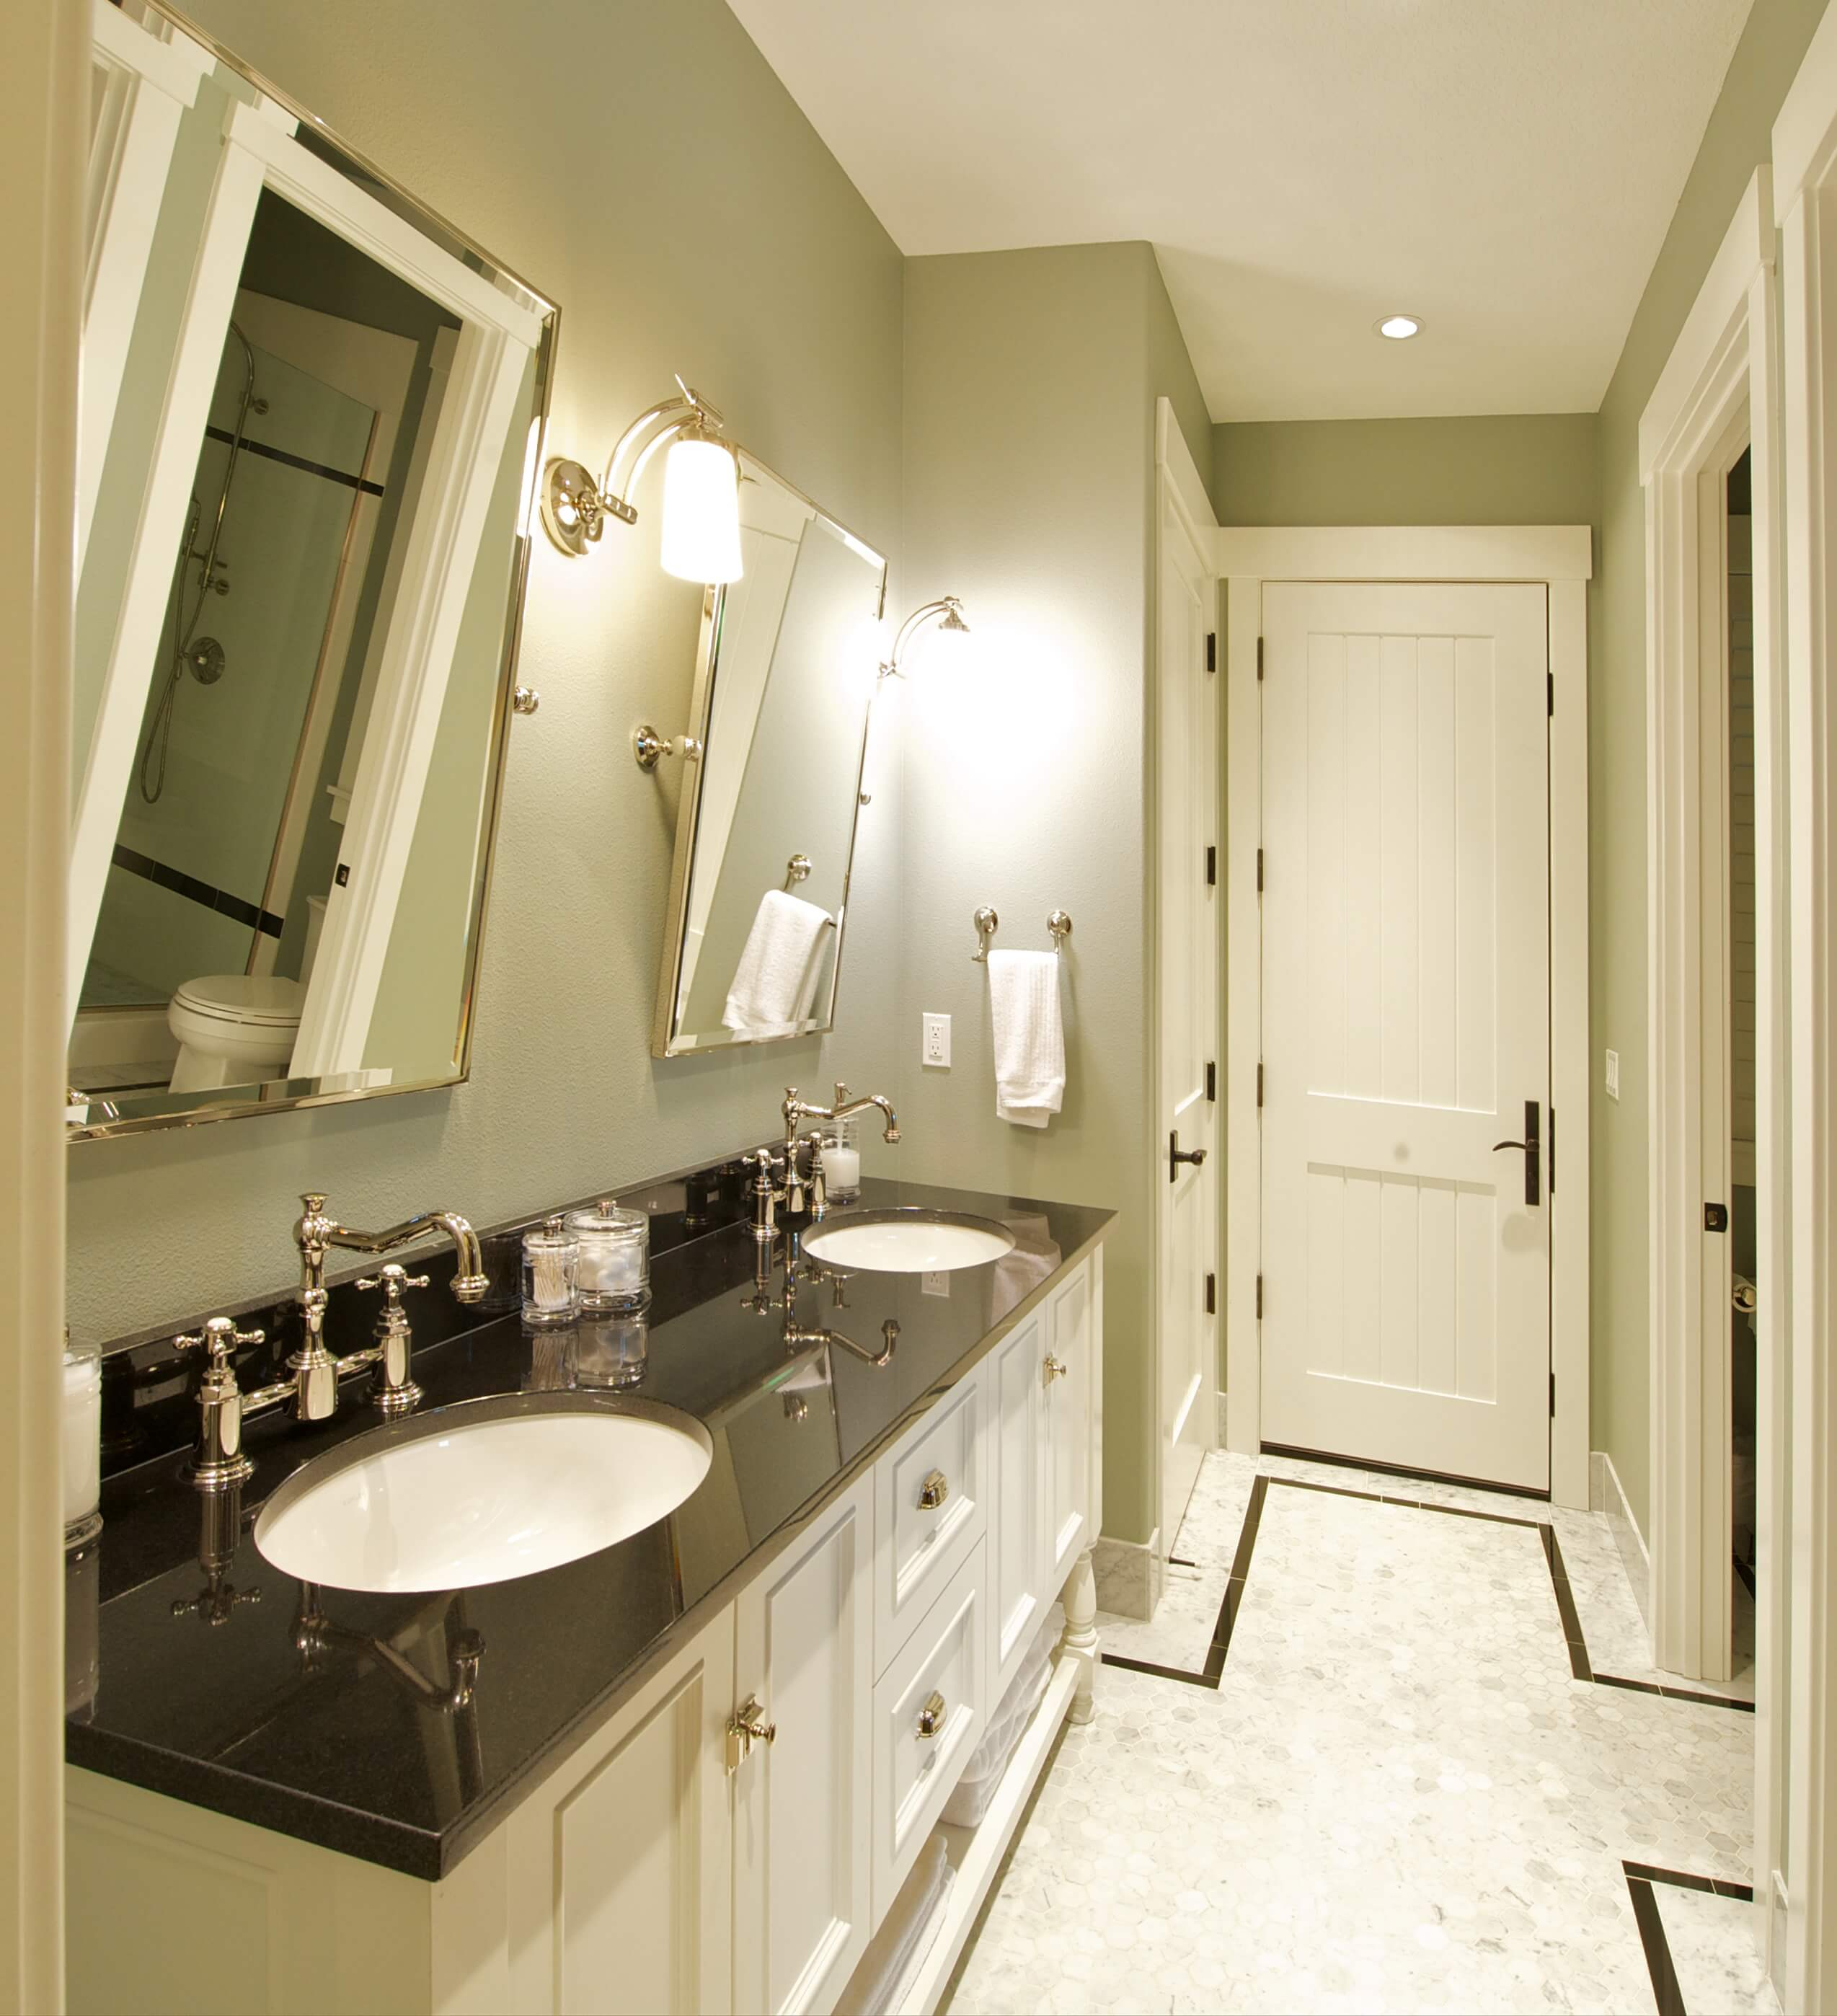 Here's the previous shot of the bathroom, now in color.